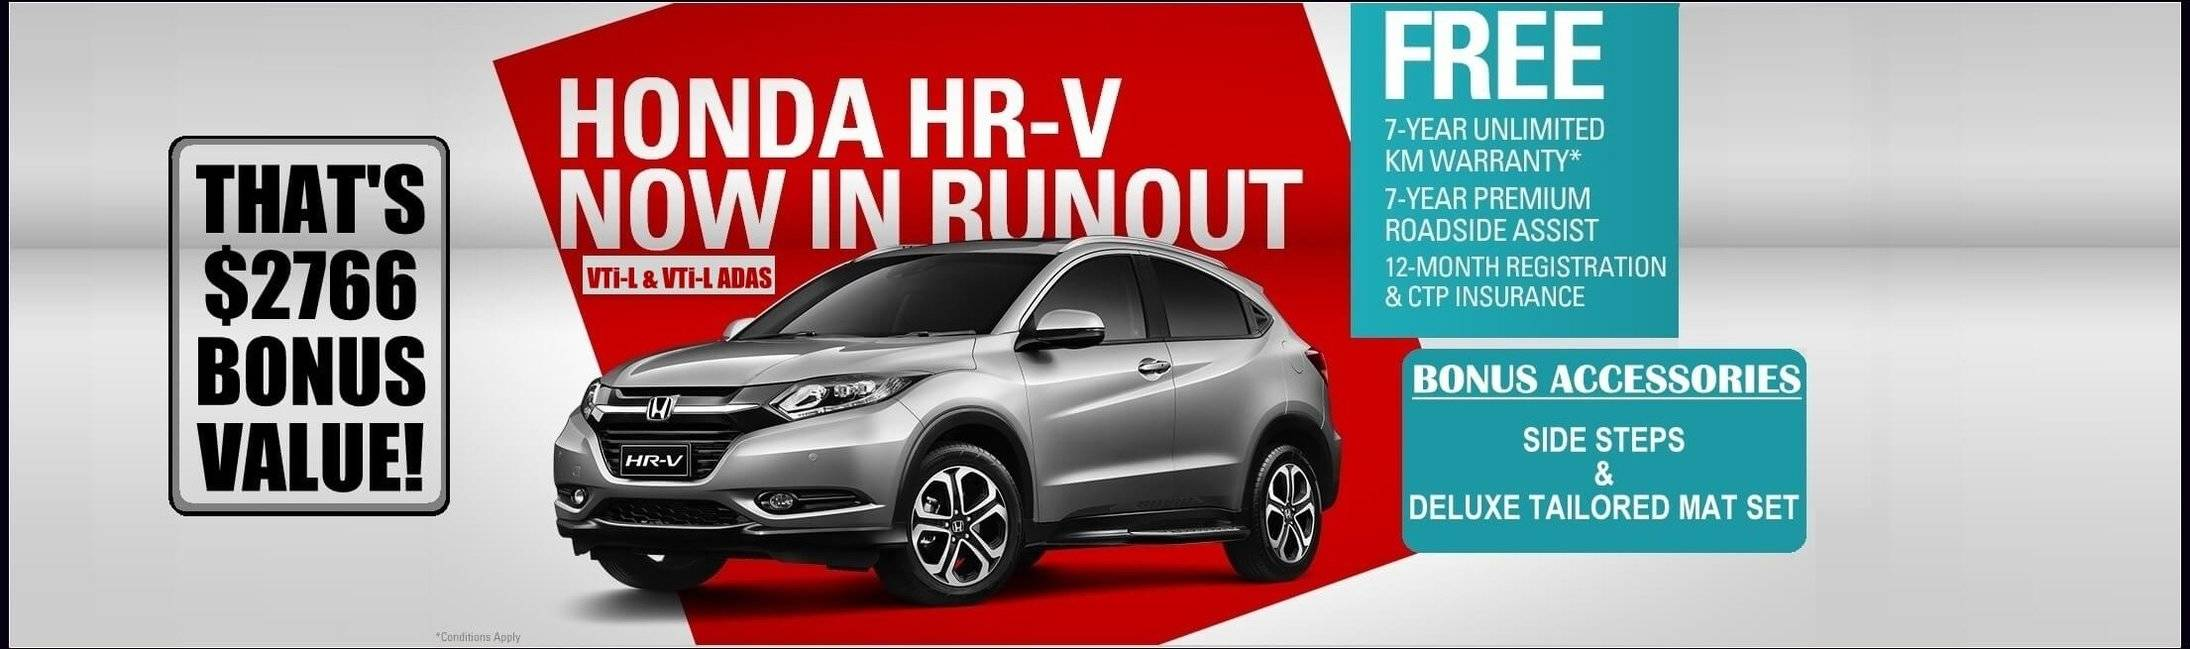 Honda HR-V Now in Runout